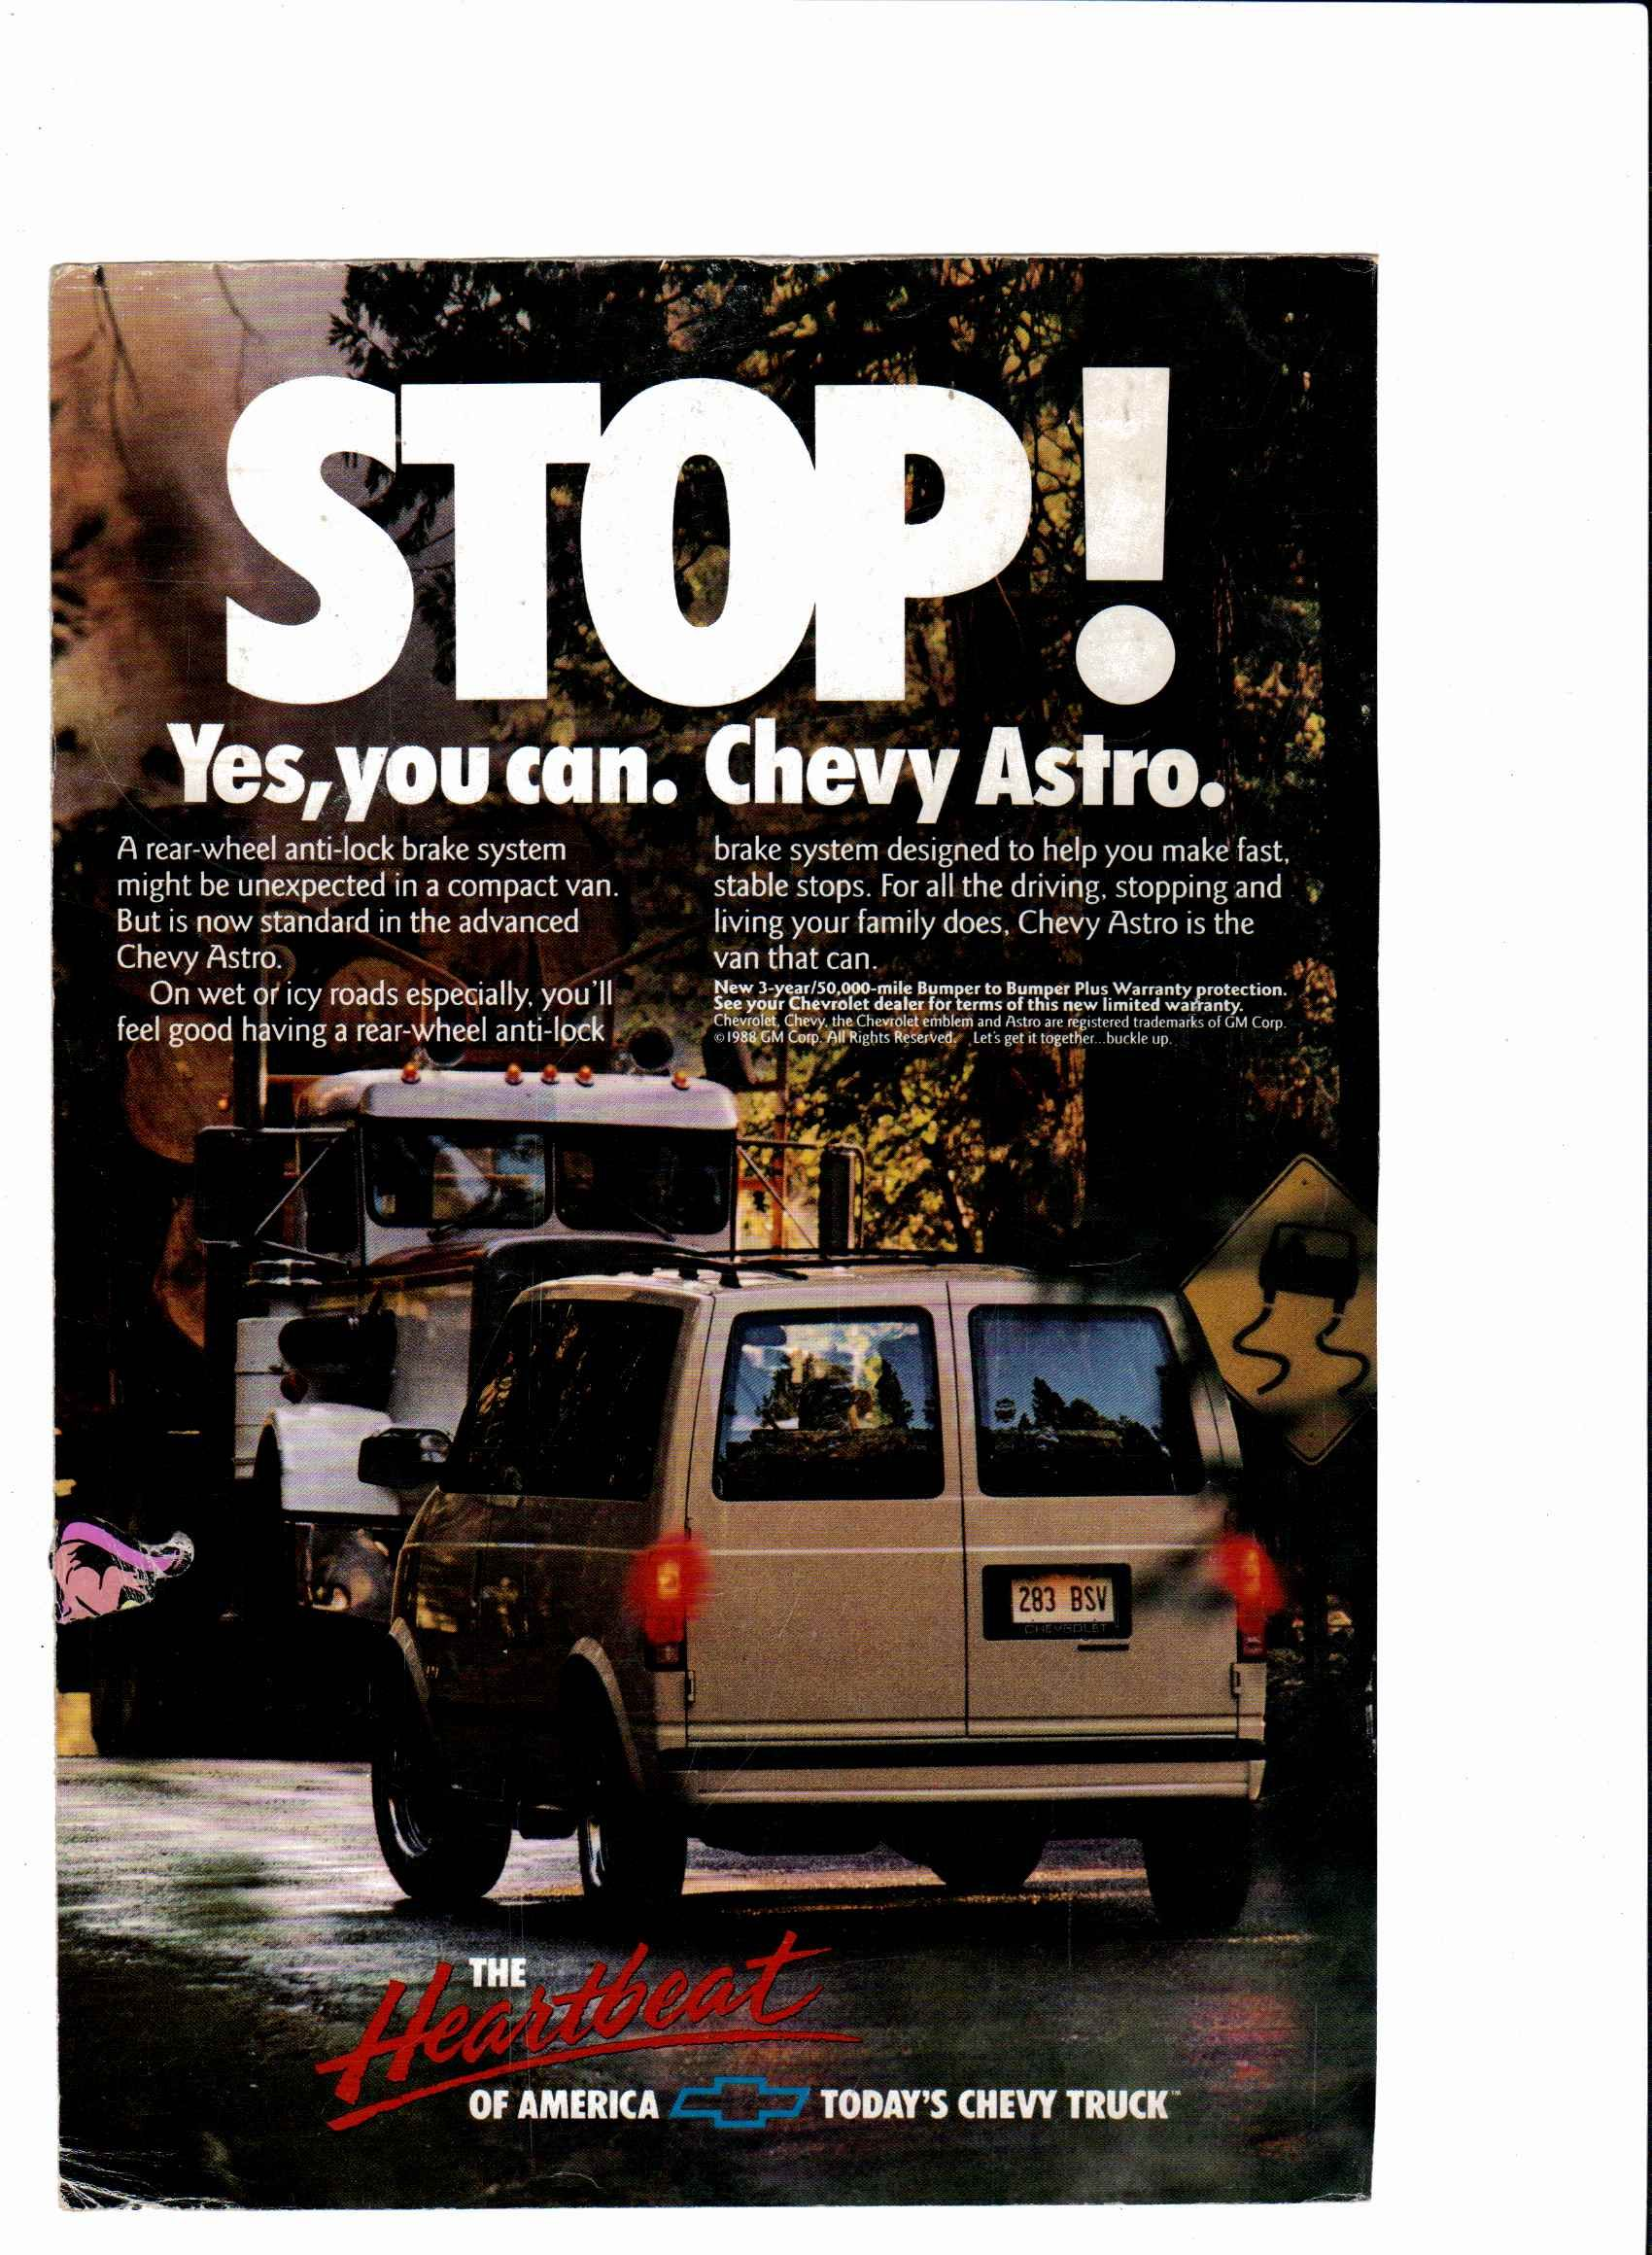 1989 Chevy Astro Van Ad National Geographic January 1989 Chevy